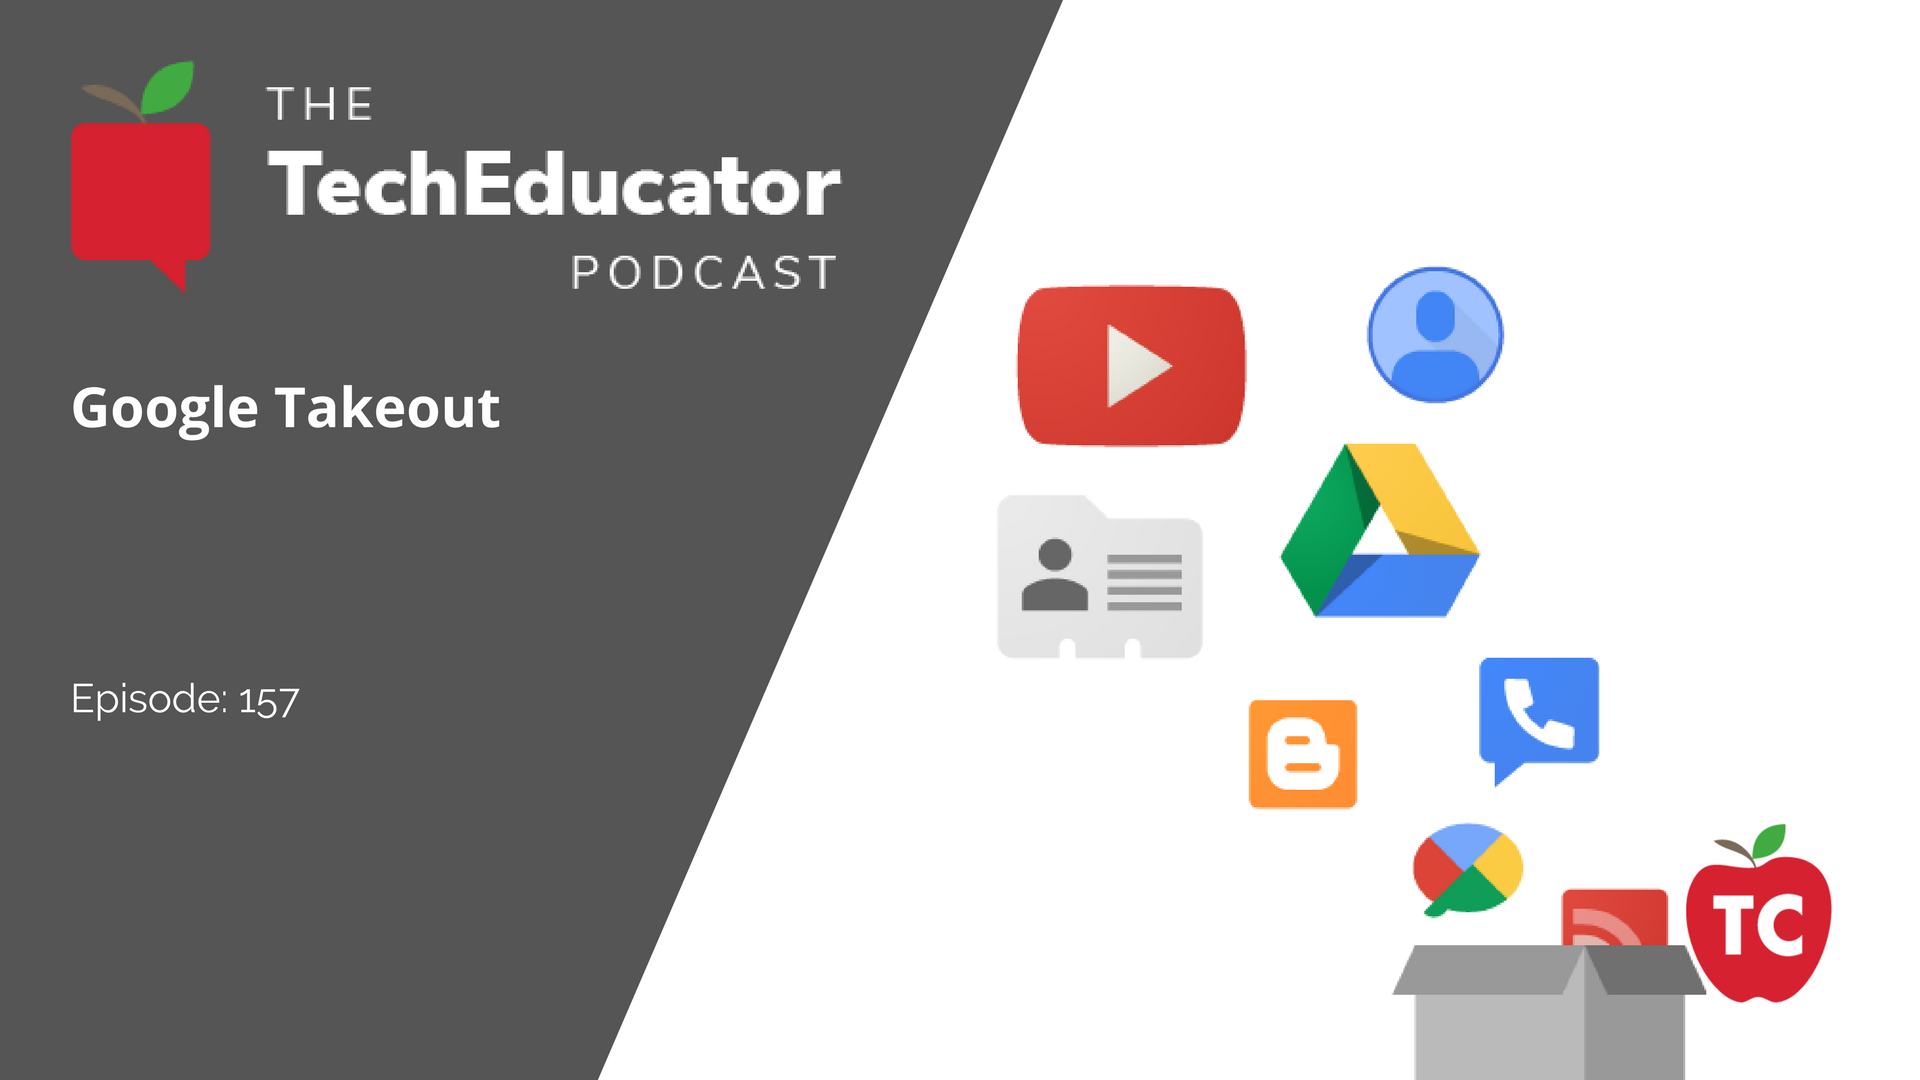 What should students and teachers know about Google Takeout?